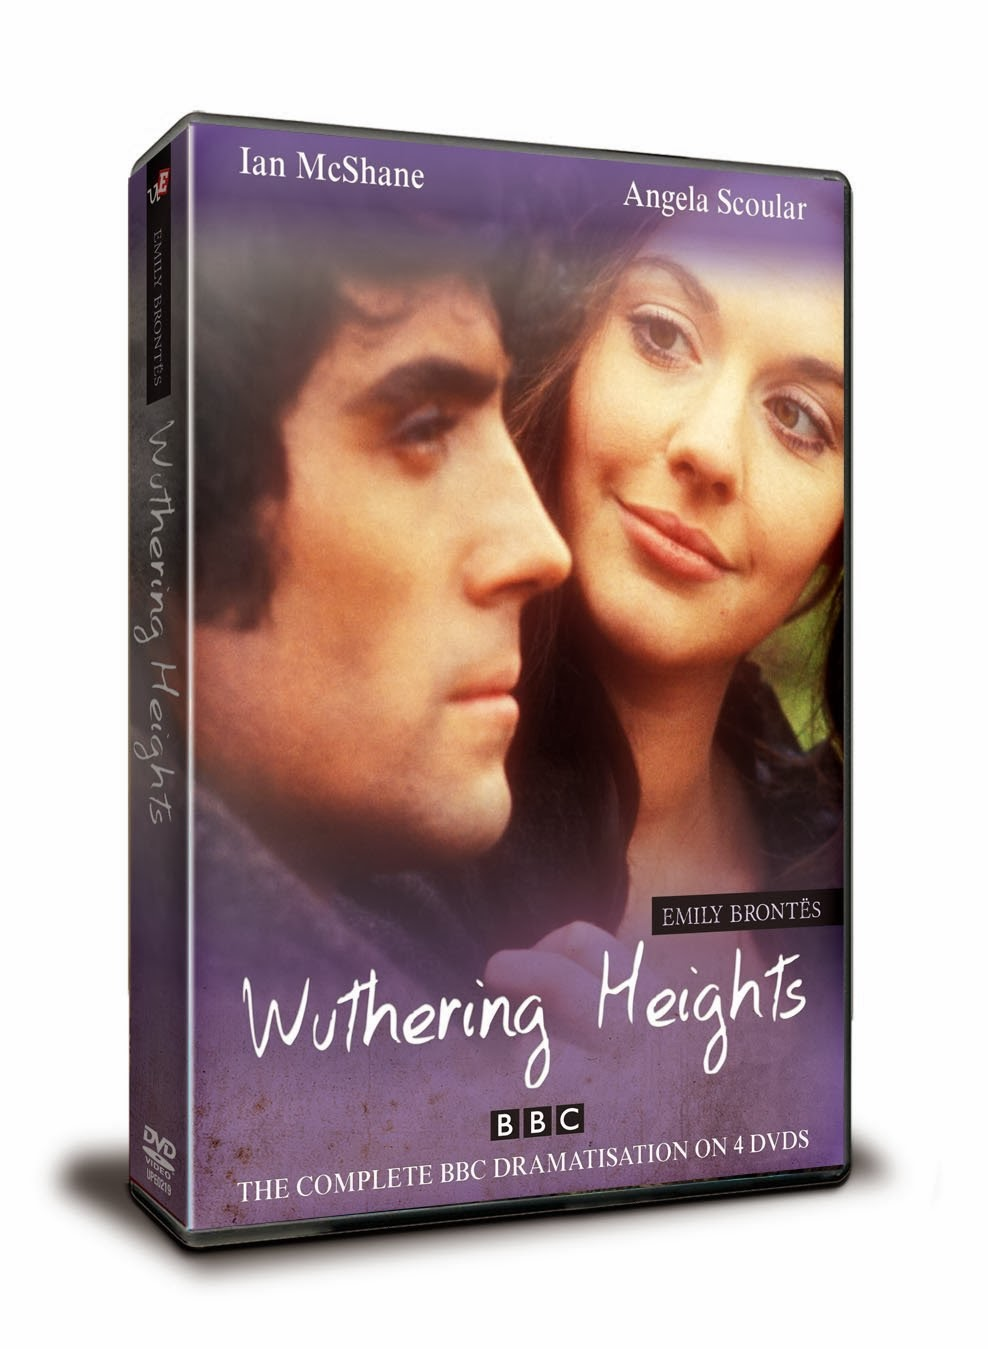 URGENT!!! WUTHERING HEIGHTS?